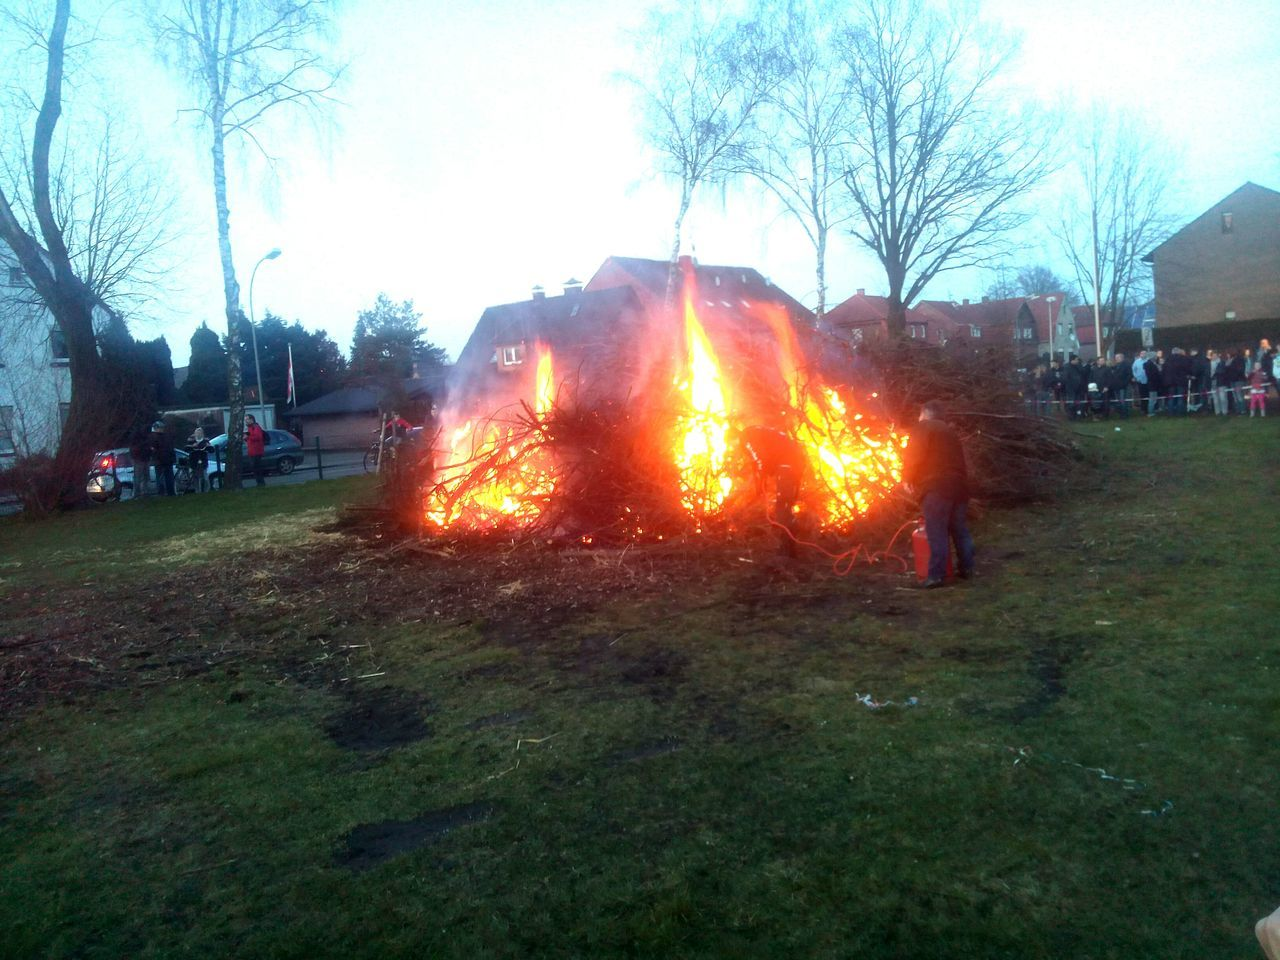 burning, tree, flame, real people, men, incidental people, leisure activity, field, grass, outdoors, large group of people, heat - temperature, women, bonfire, built structure, sky, nature, day, bare tree, building exterior, architecture, people